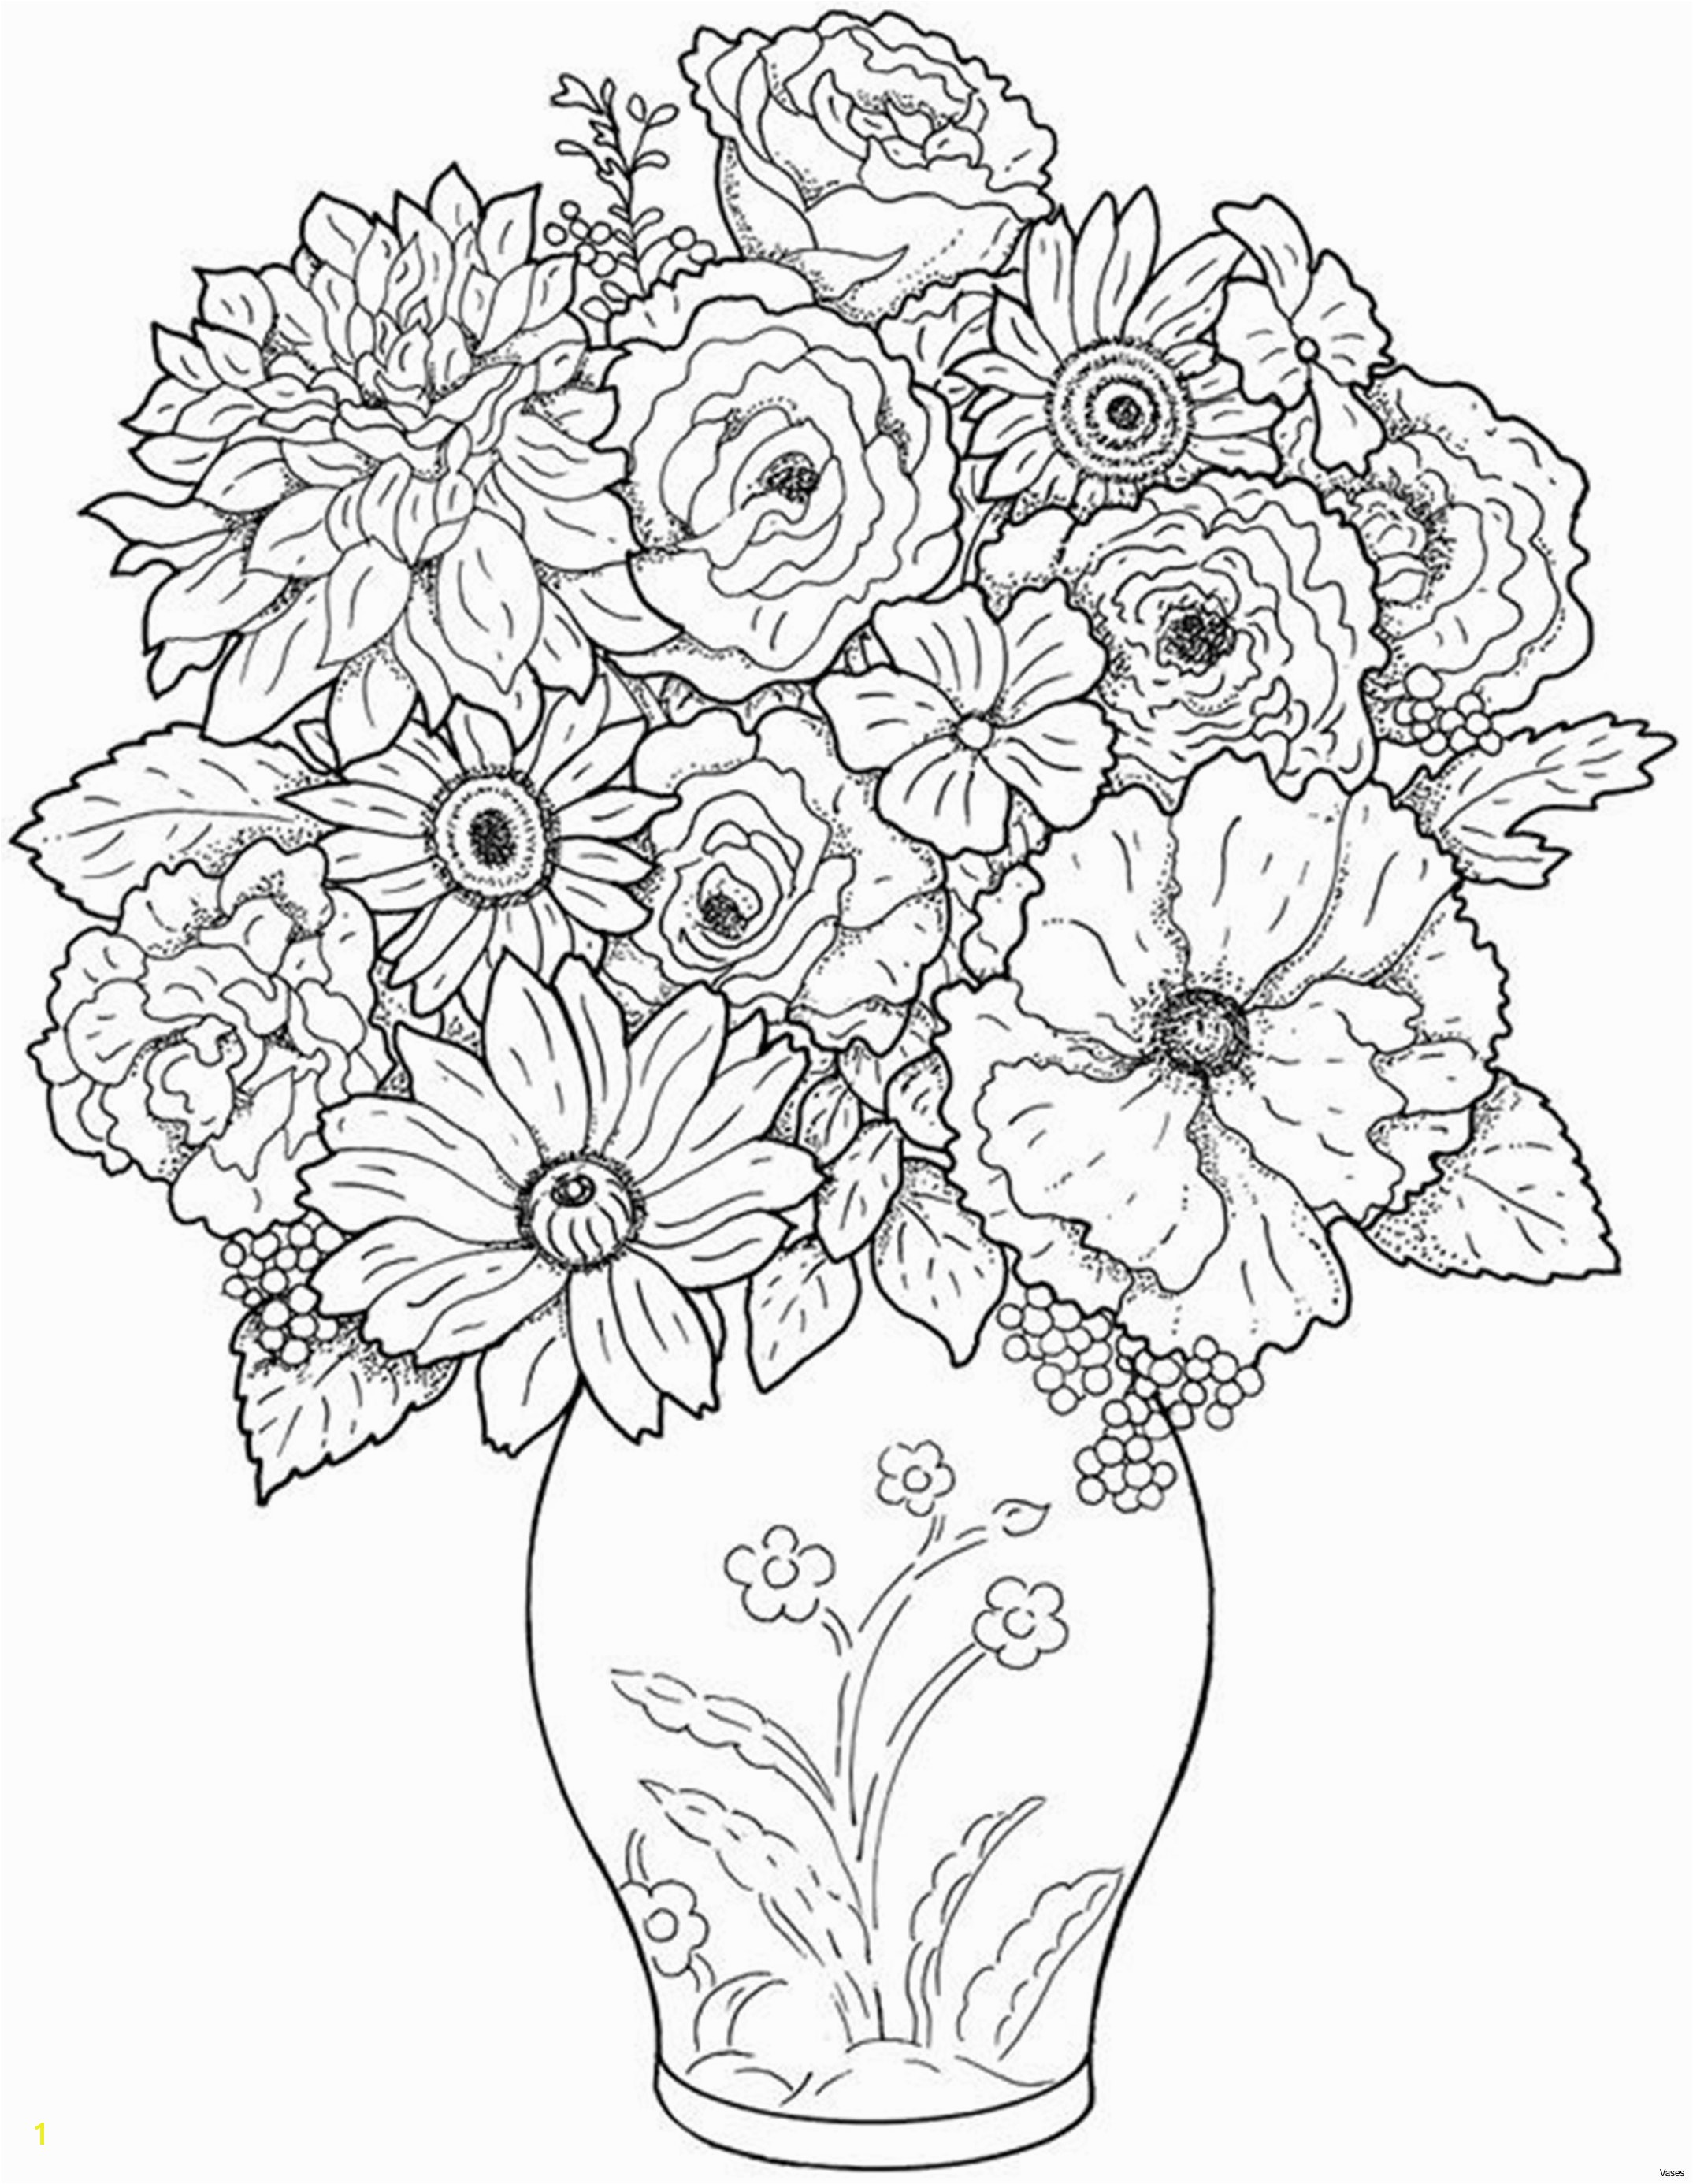 Colouring for Children Fresh Cool Vases Flower Vase Coloring Page Pages Flowers In A top